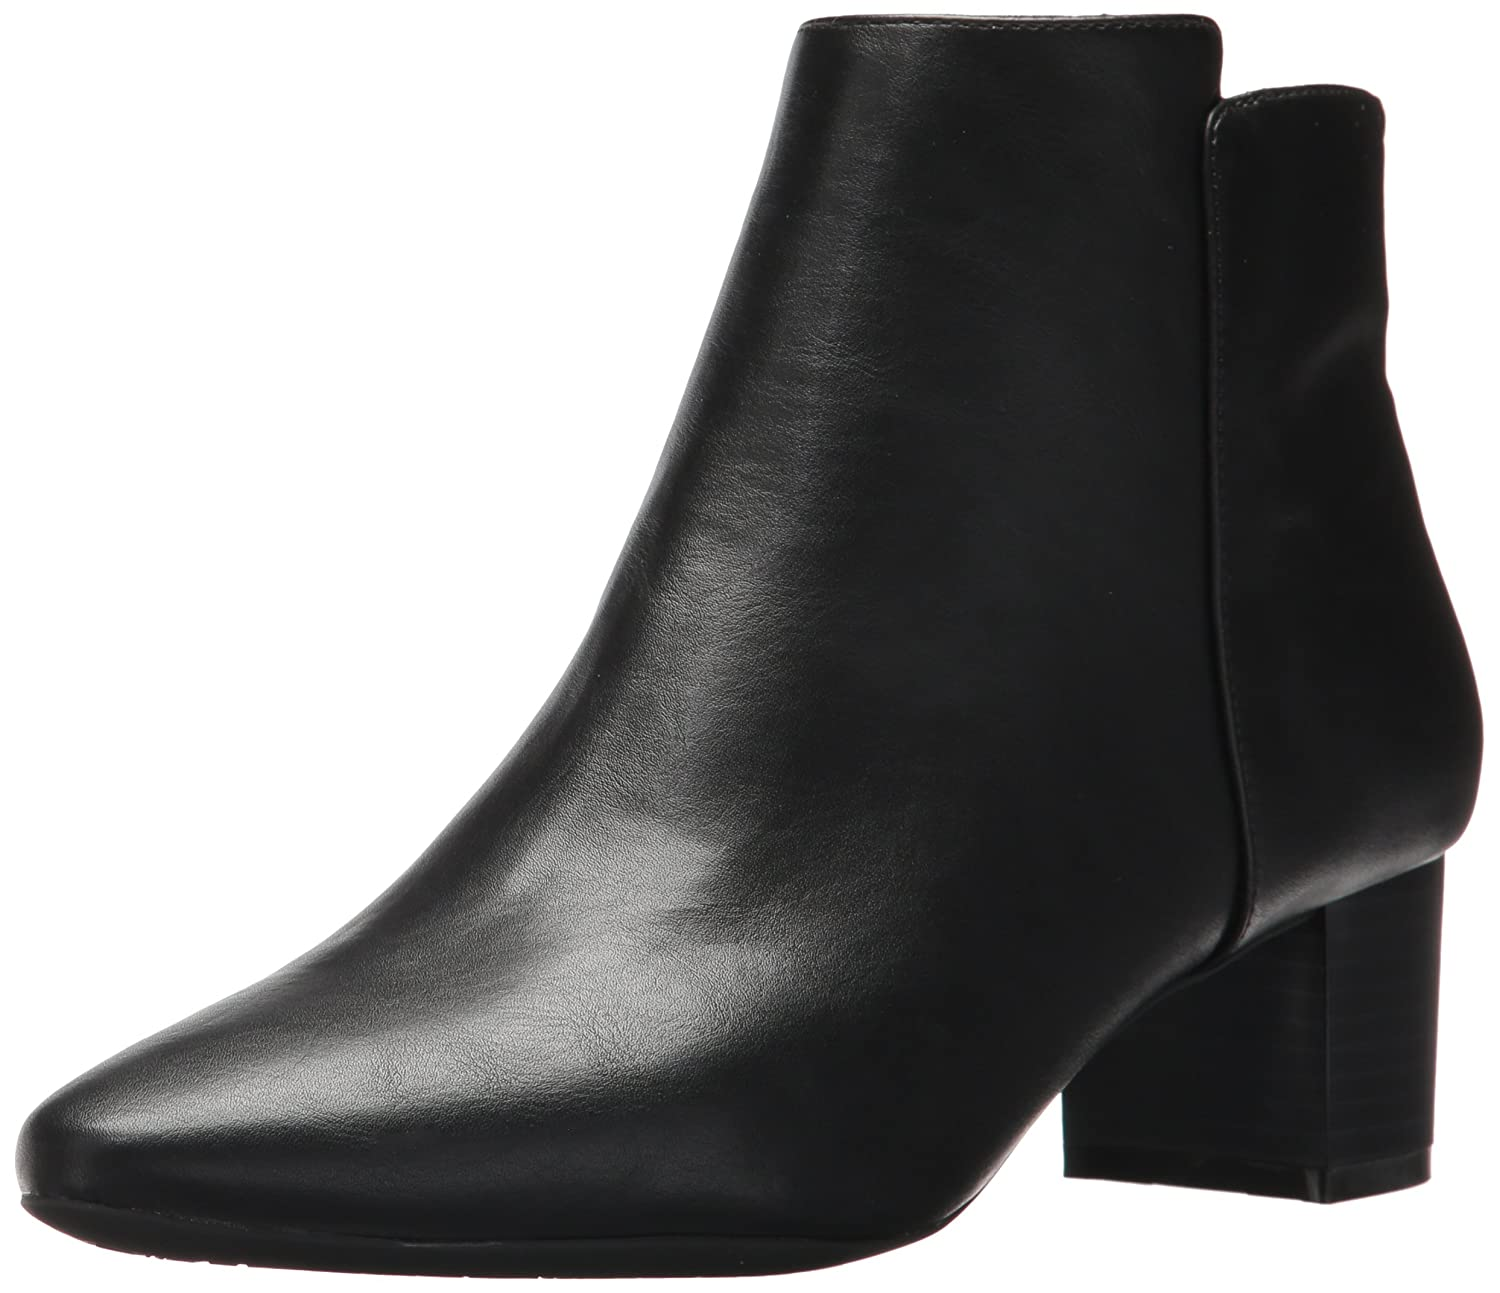 Rockport Women's Caden 2-Part Ankle Bootie B01NAXT4JZ 11 B(M) US|Black Smooth